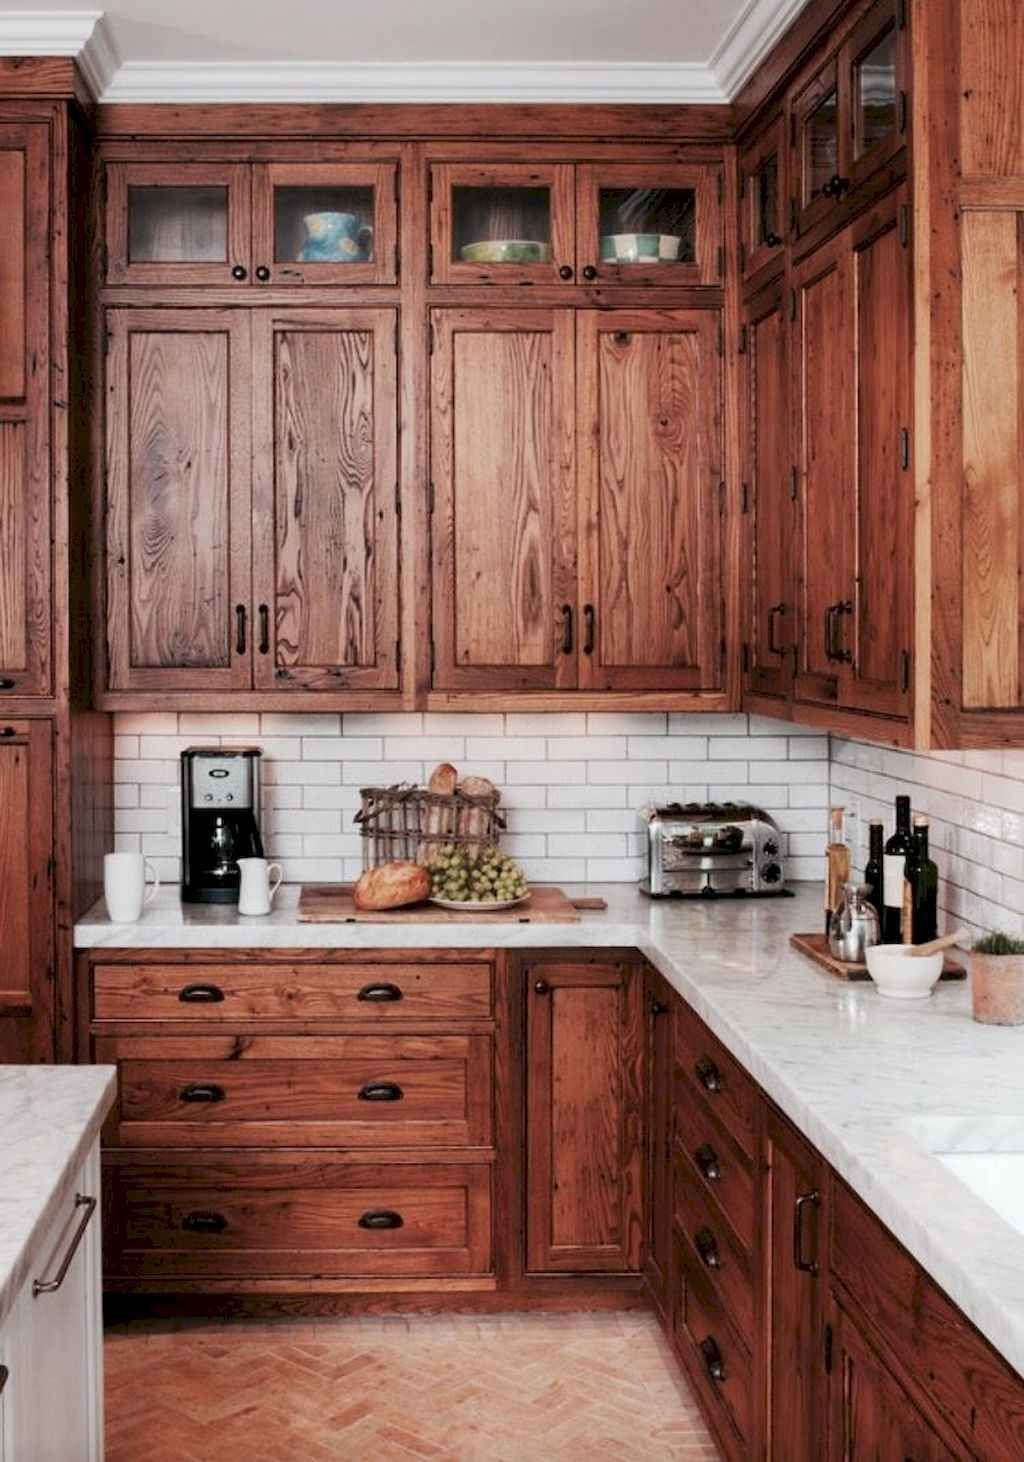 65 Brilliant Kitchen Cabinet Organization and Tips Ideas #kitchenstorageideas